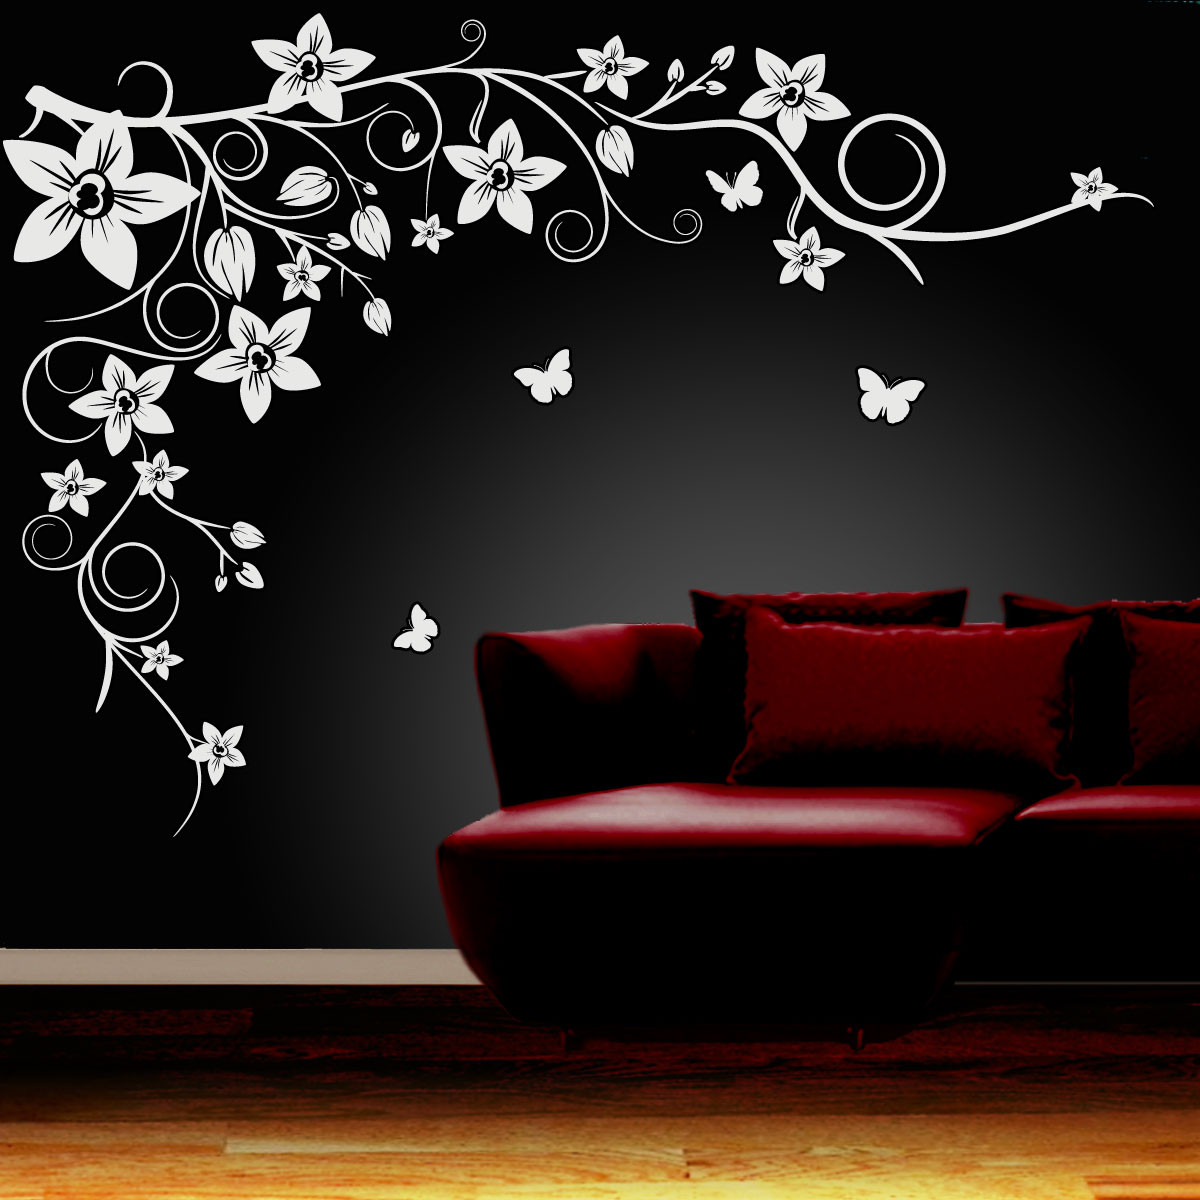 Best ideas about Wall Art Decals . Save or Pin Wall Art Decals for Wall Design of Modern Urban Apartment Now.